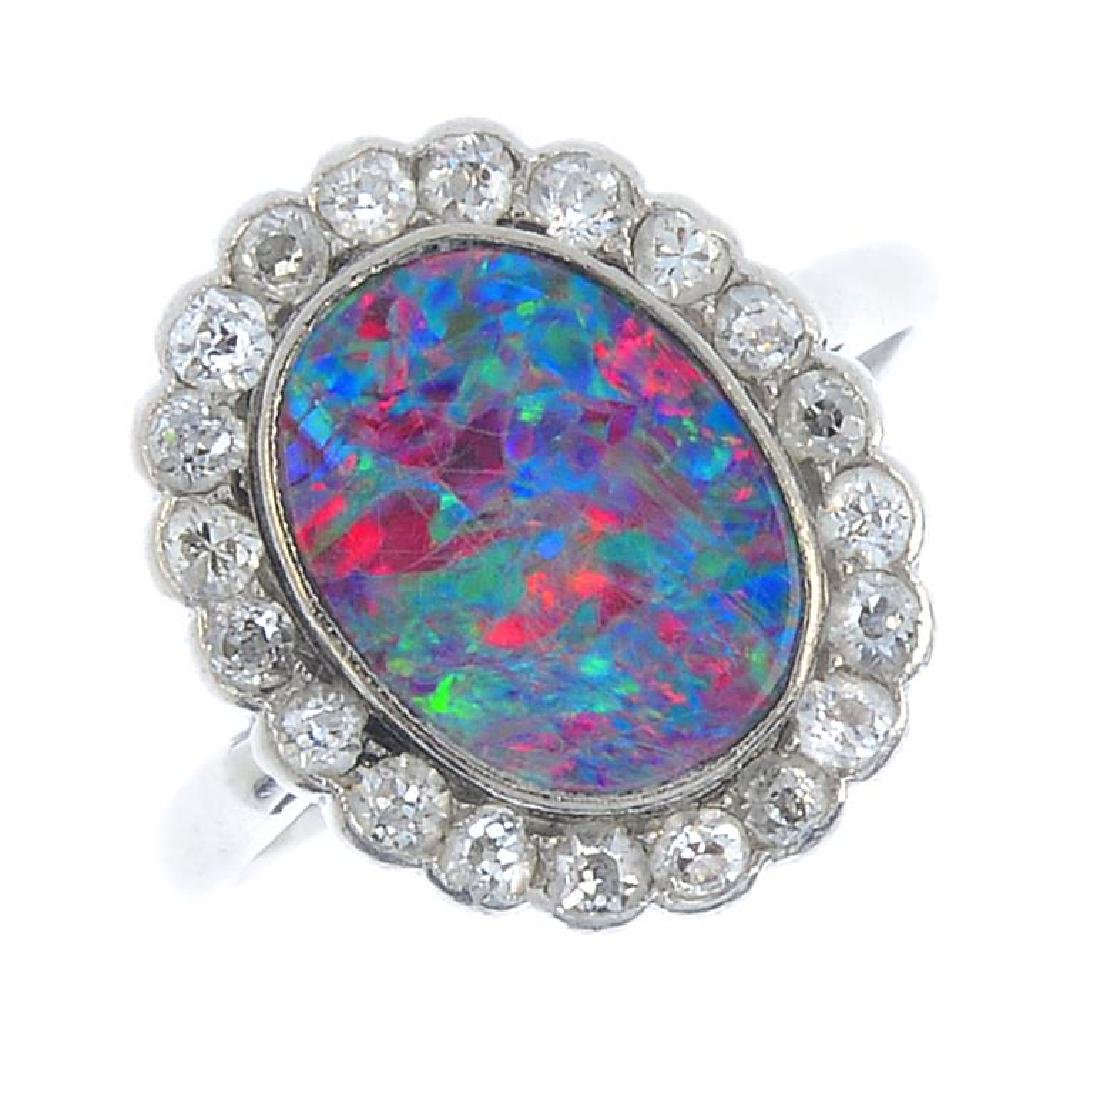 An early 20th century platinum, opal doublet and